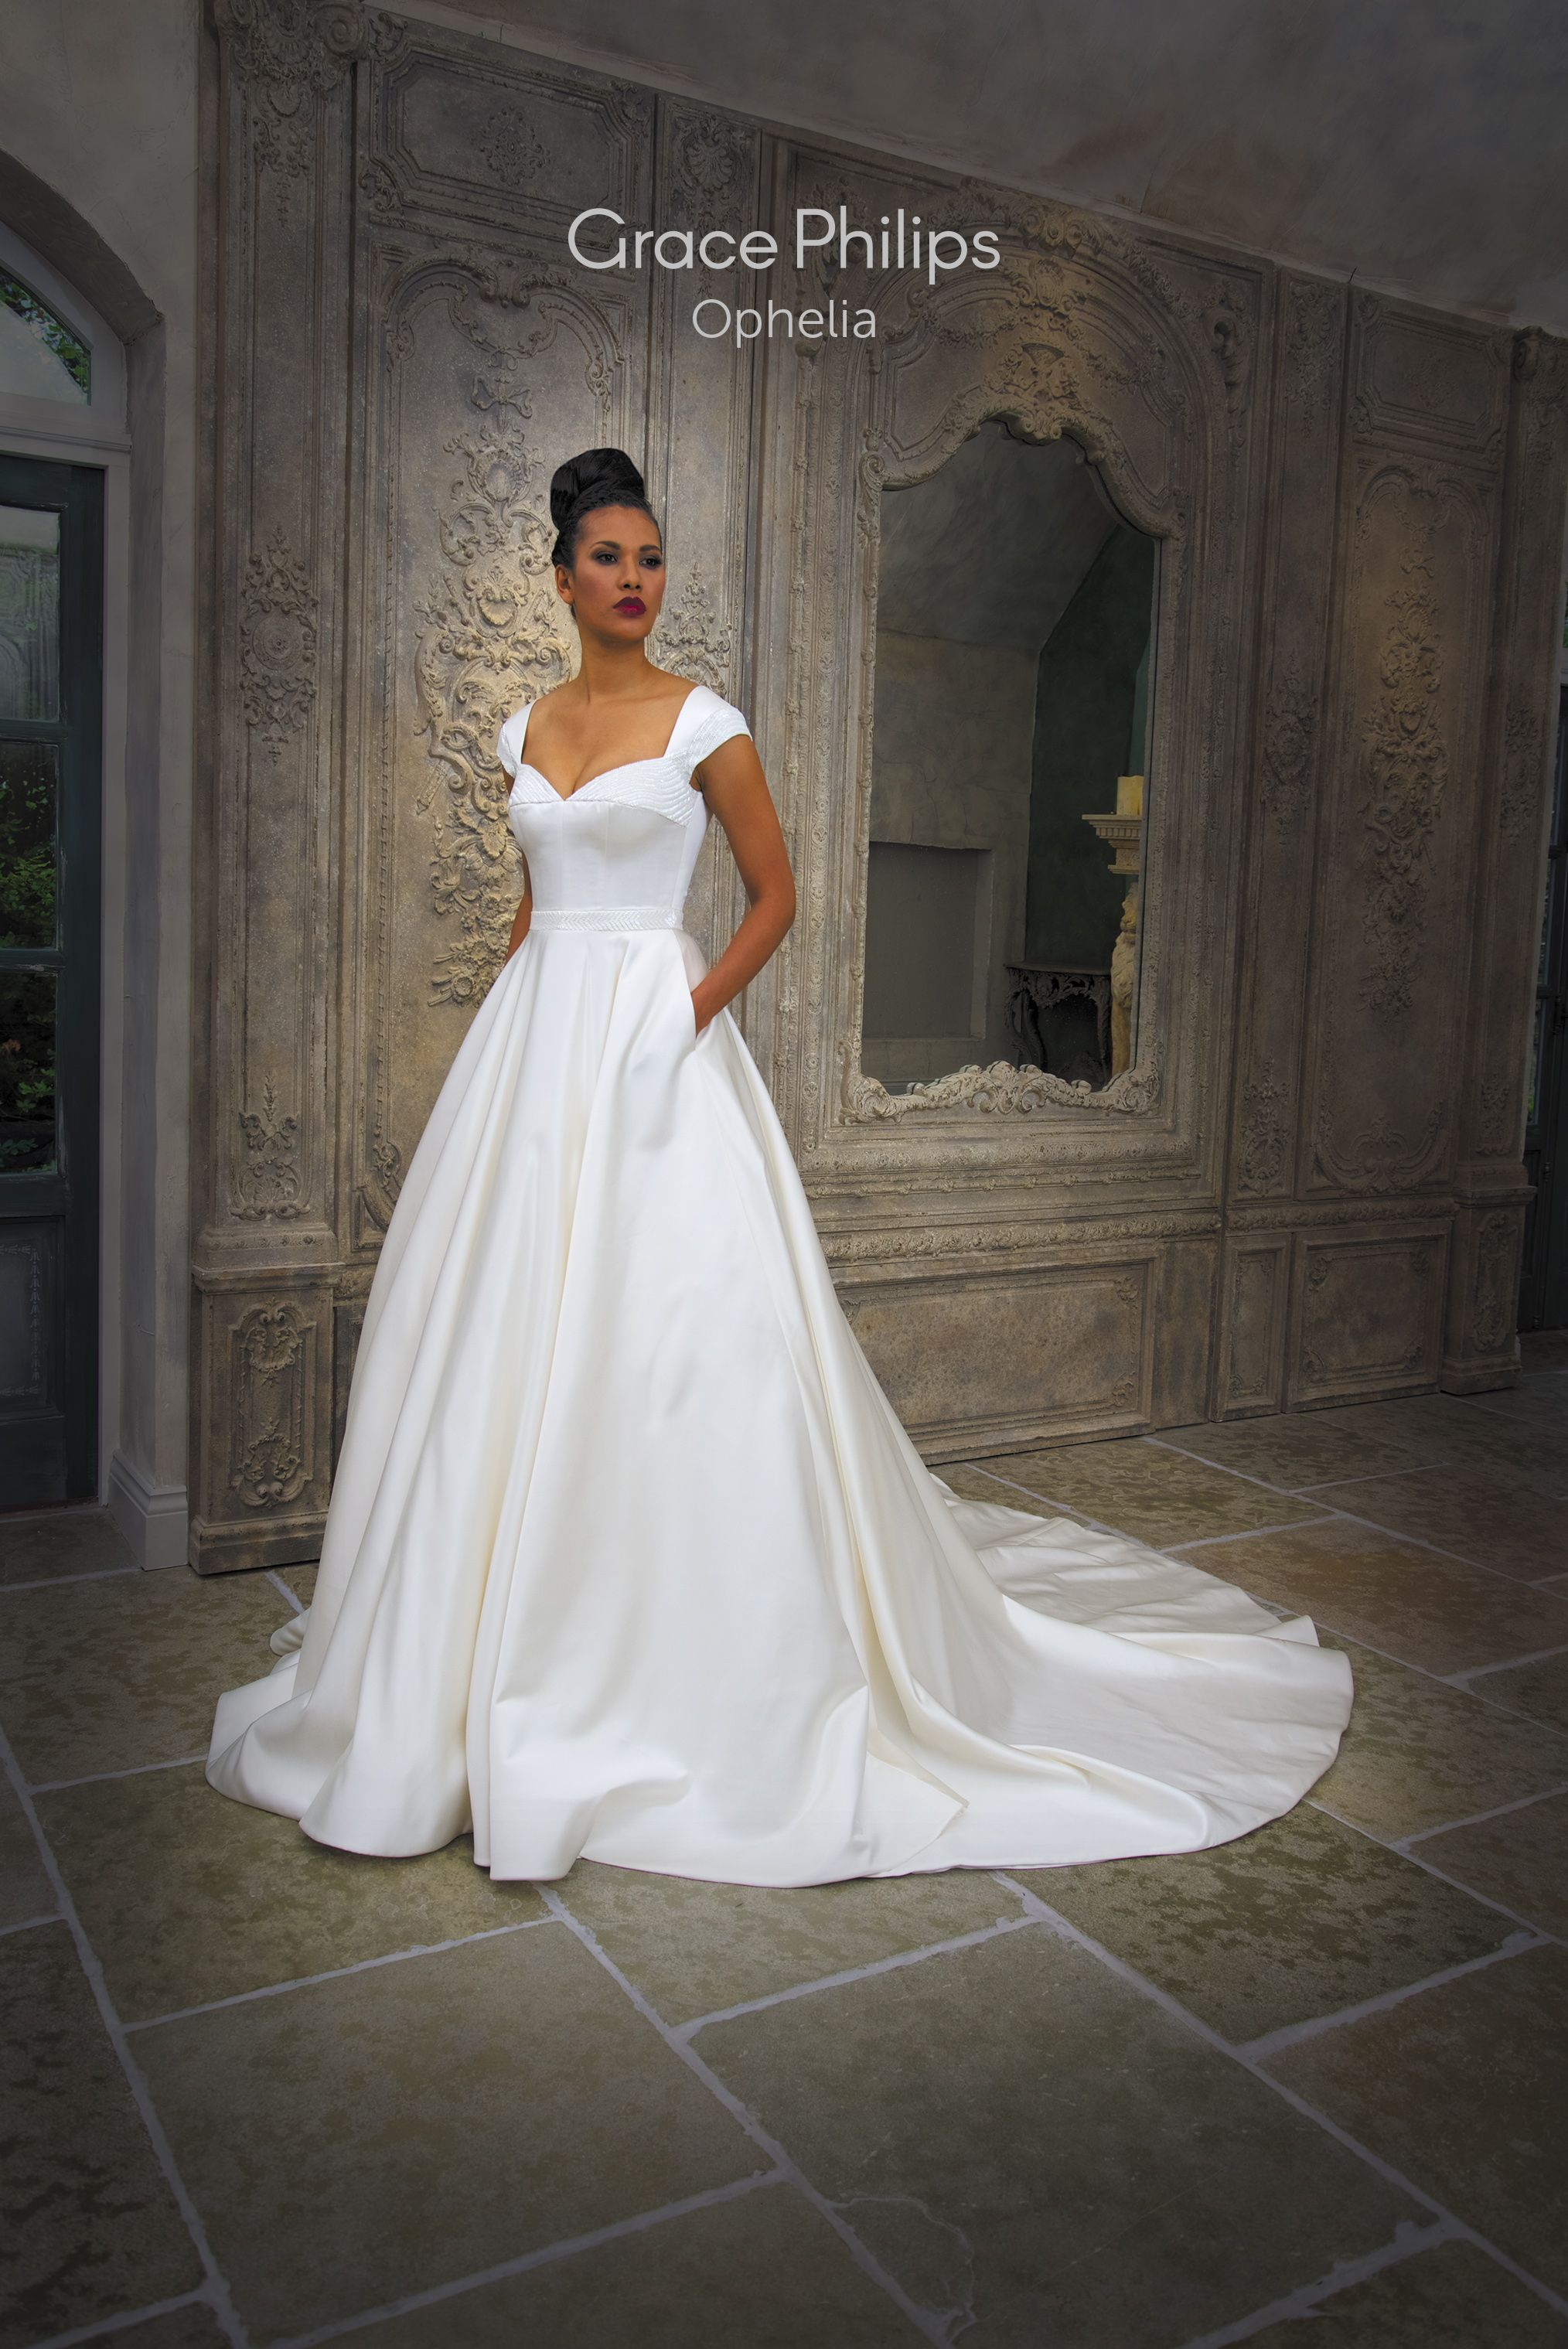 Wedding ivory dress  An ivory satin ball gown wedding dress with a soft cupid neckline